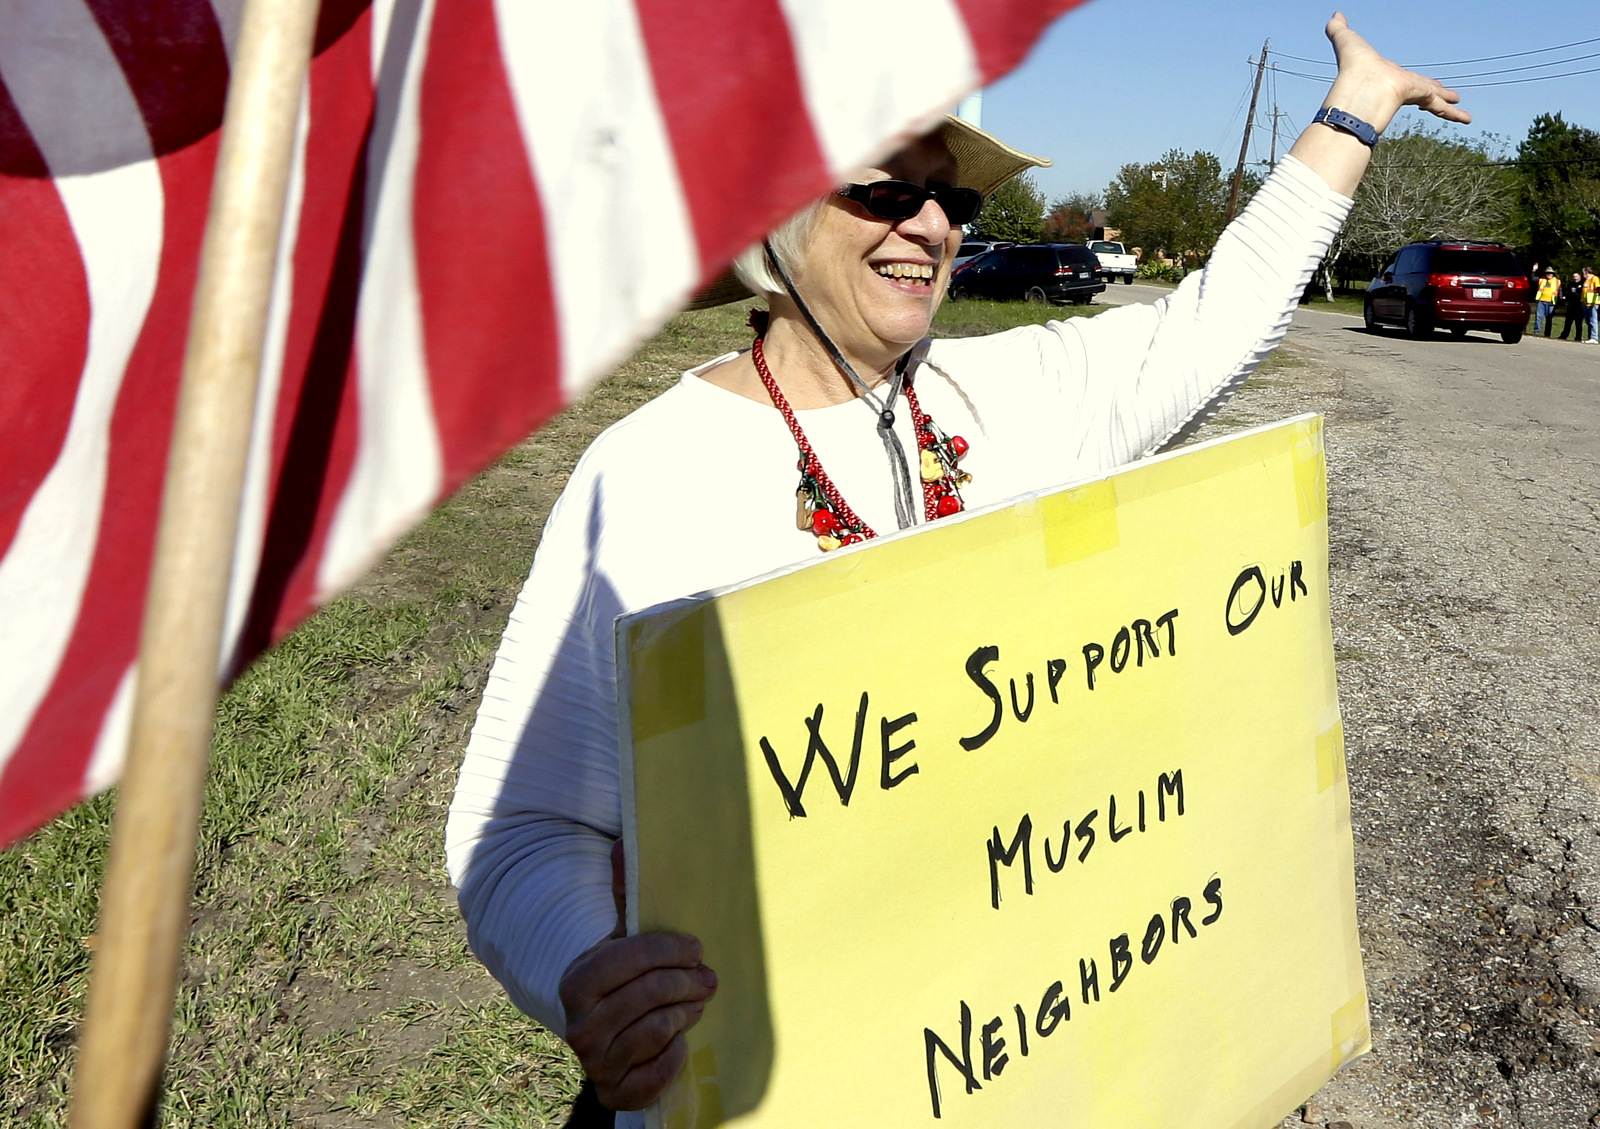 Jane Malin holds a sign as she waves to passing cars during a rally to show support for Muslim members of the community. (AP Photo/David J. Phillip)